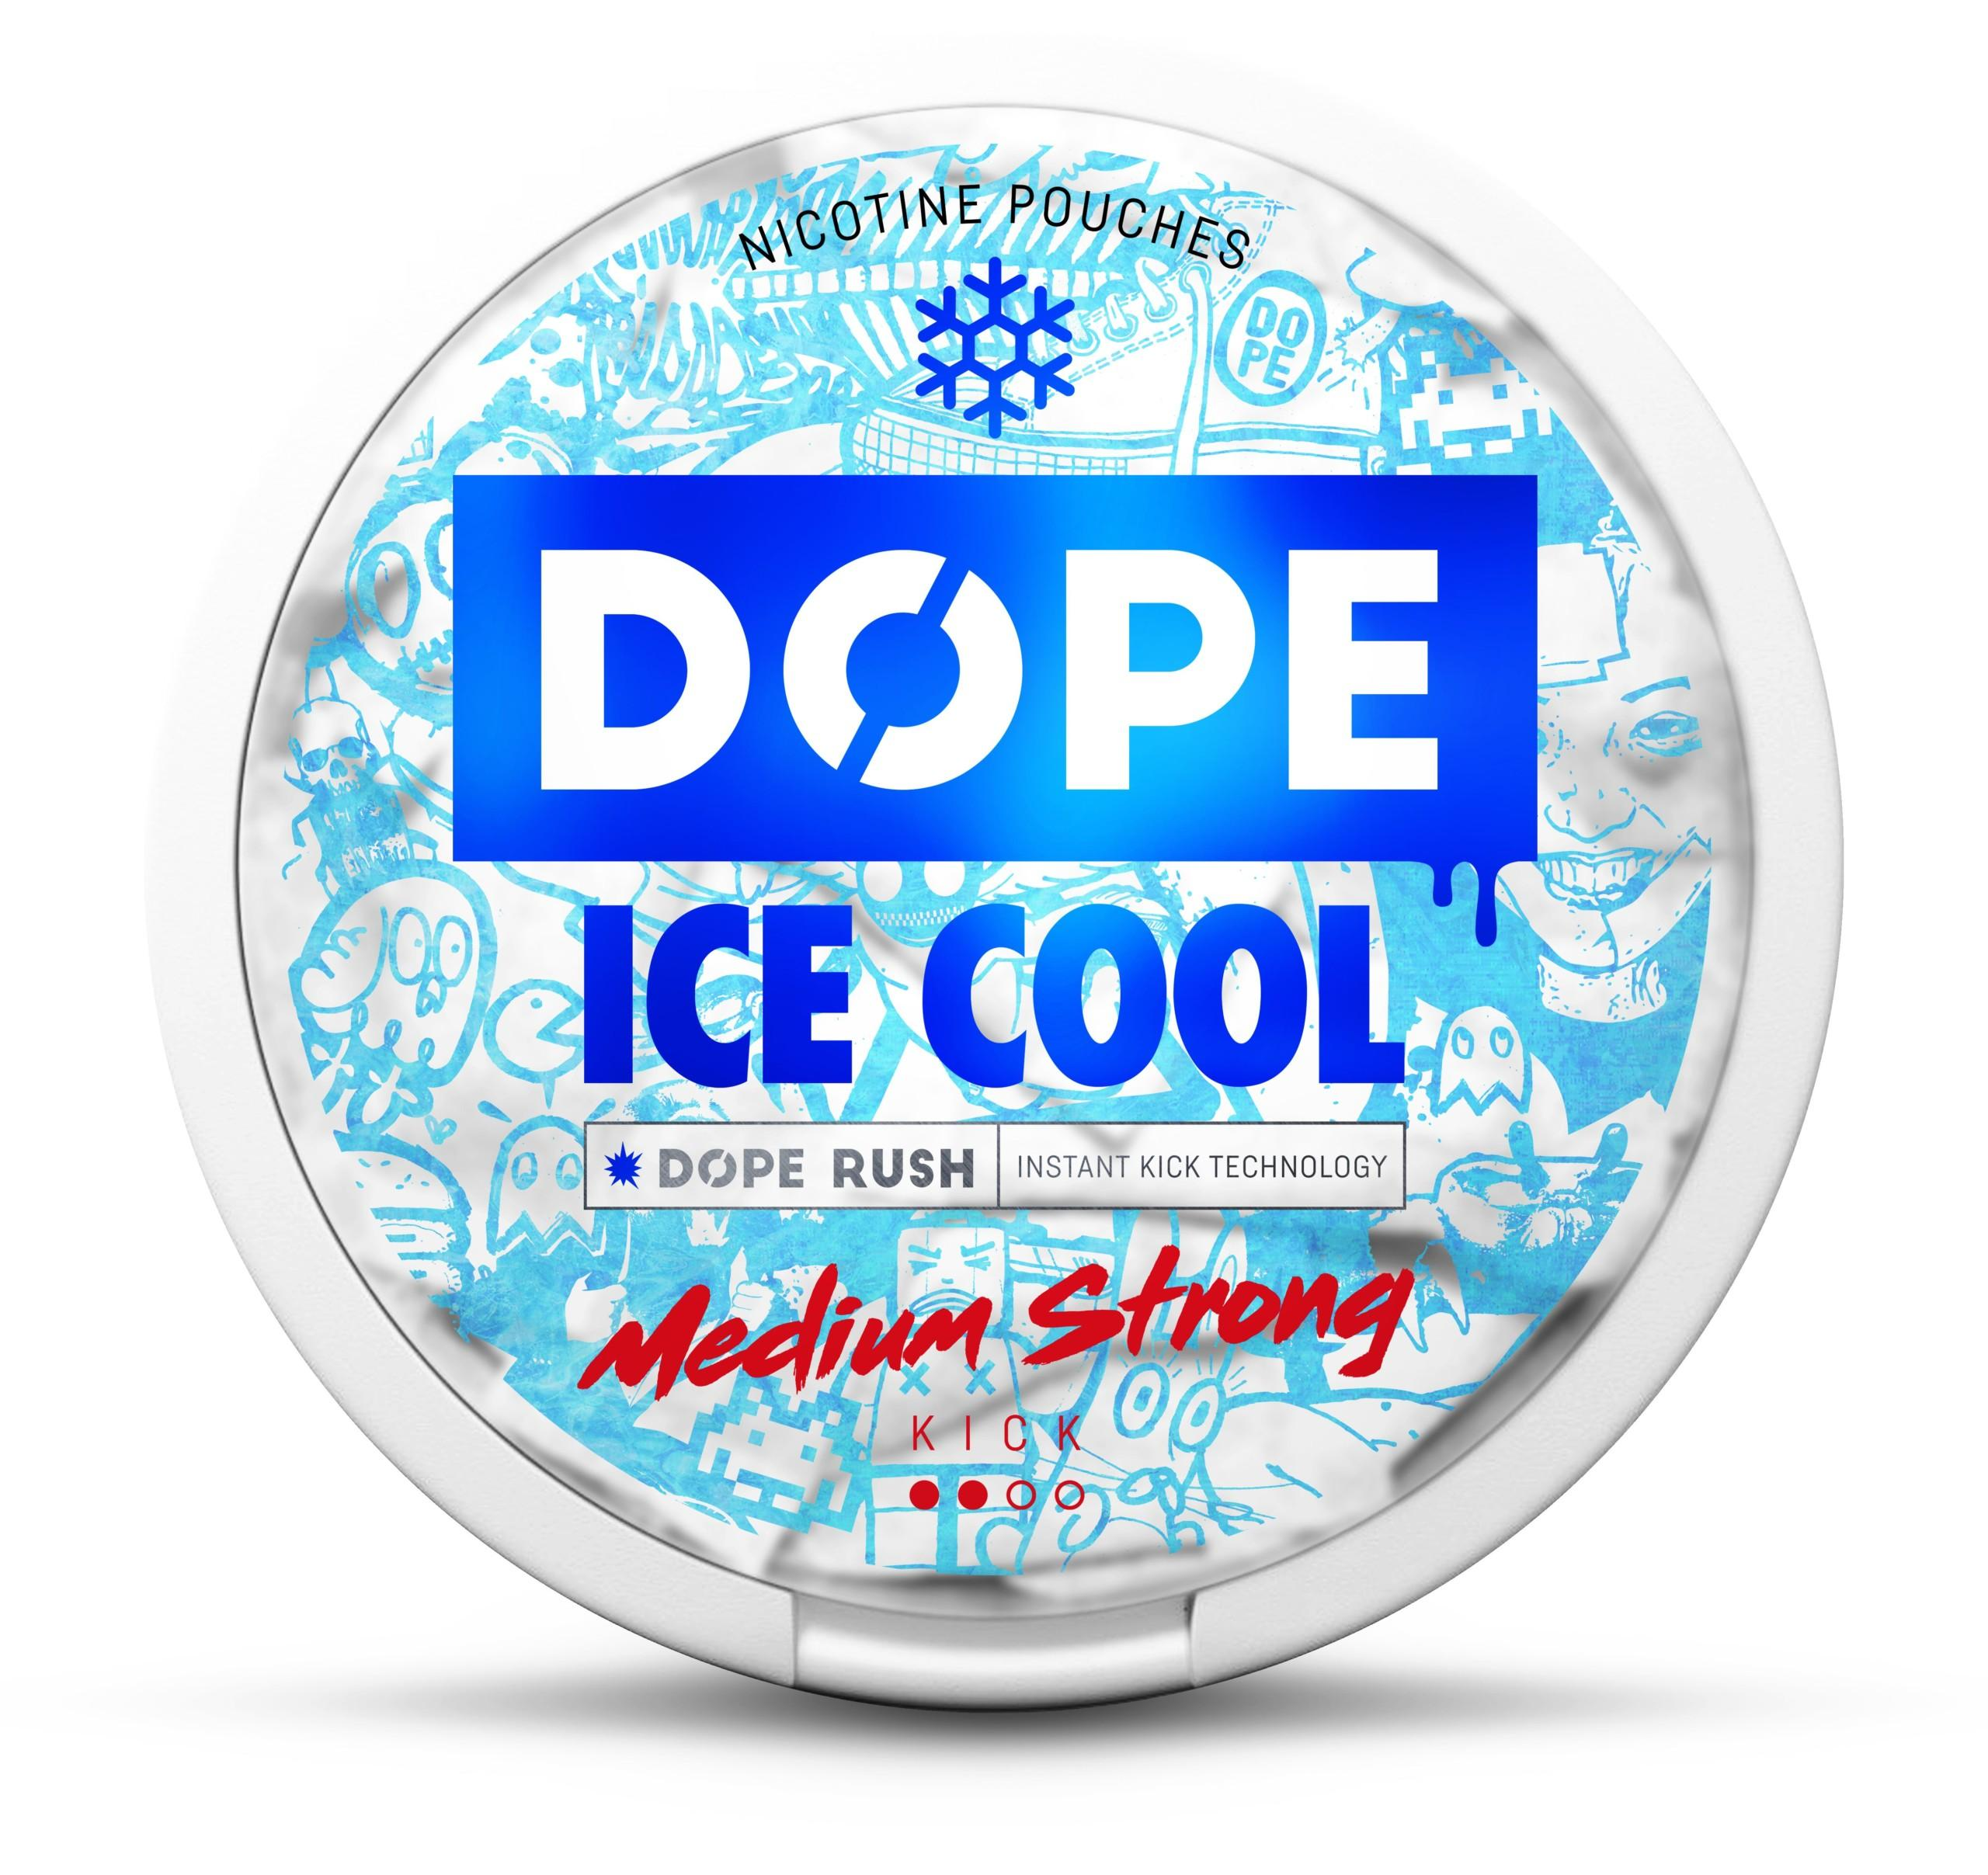 Dope Ice Cool nikotiinipussi 4mg